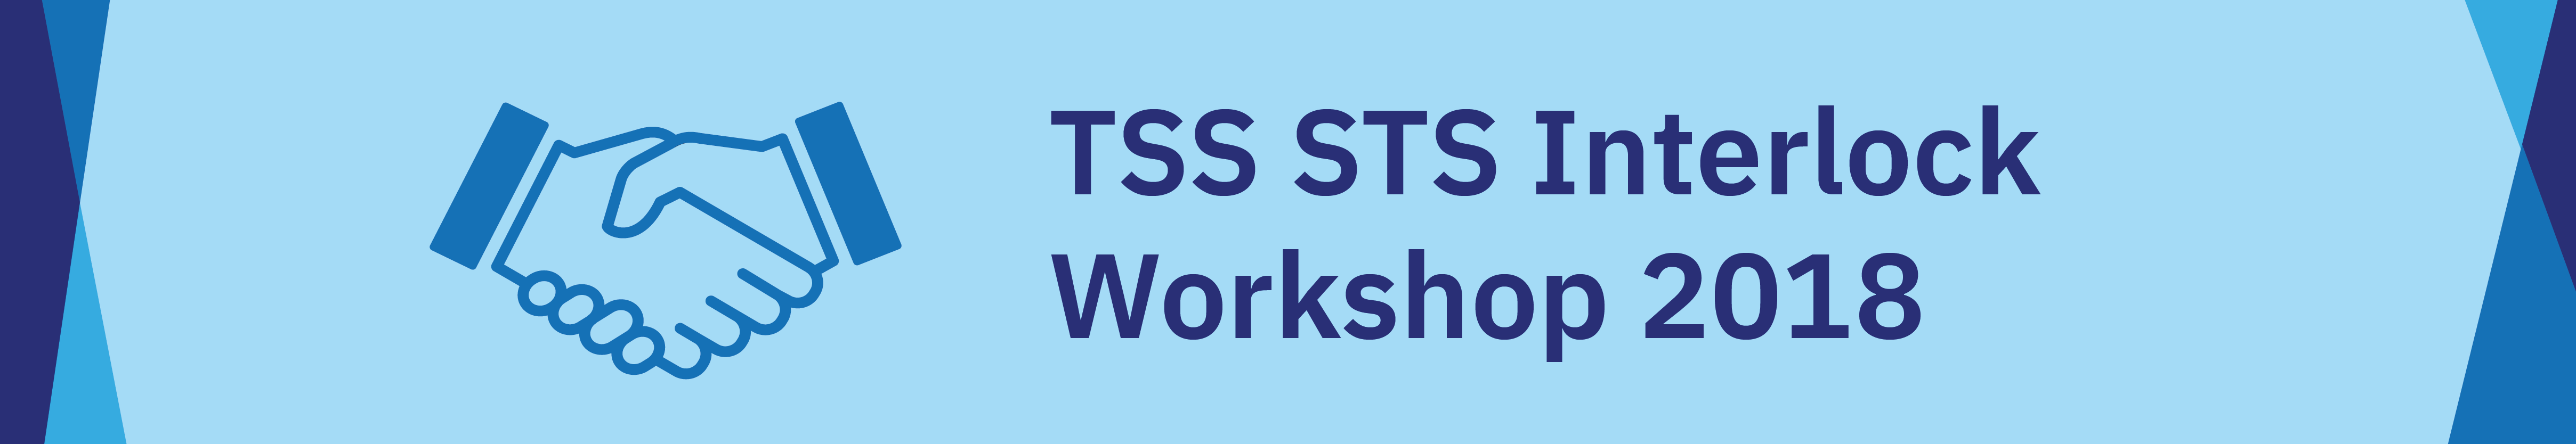 TSS STS Interlock Workshop